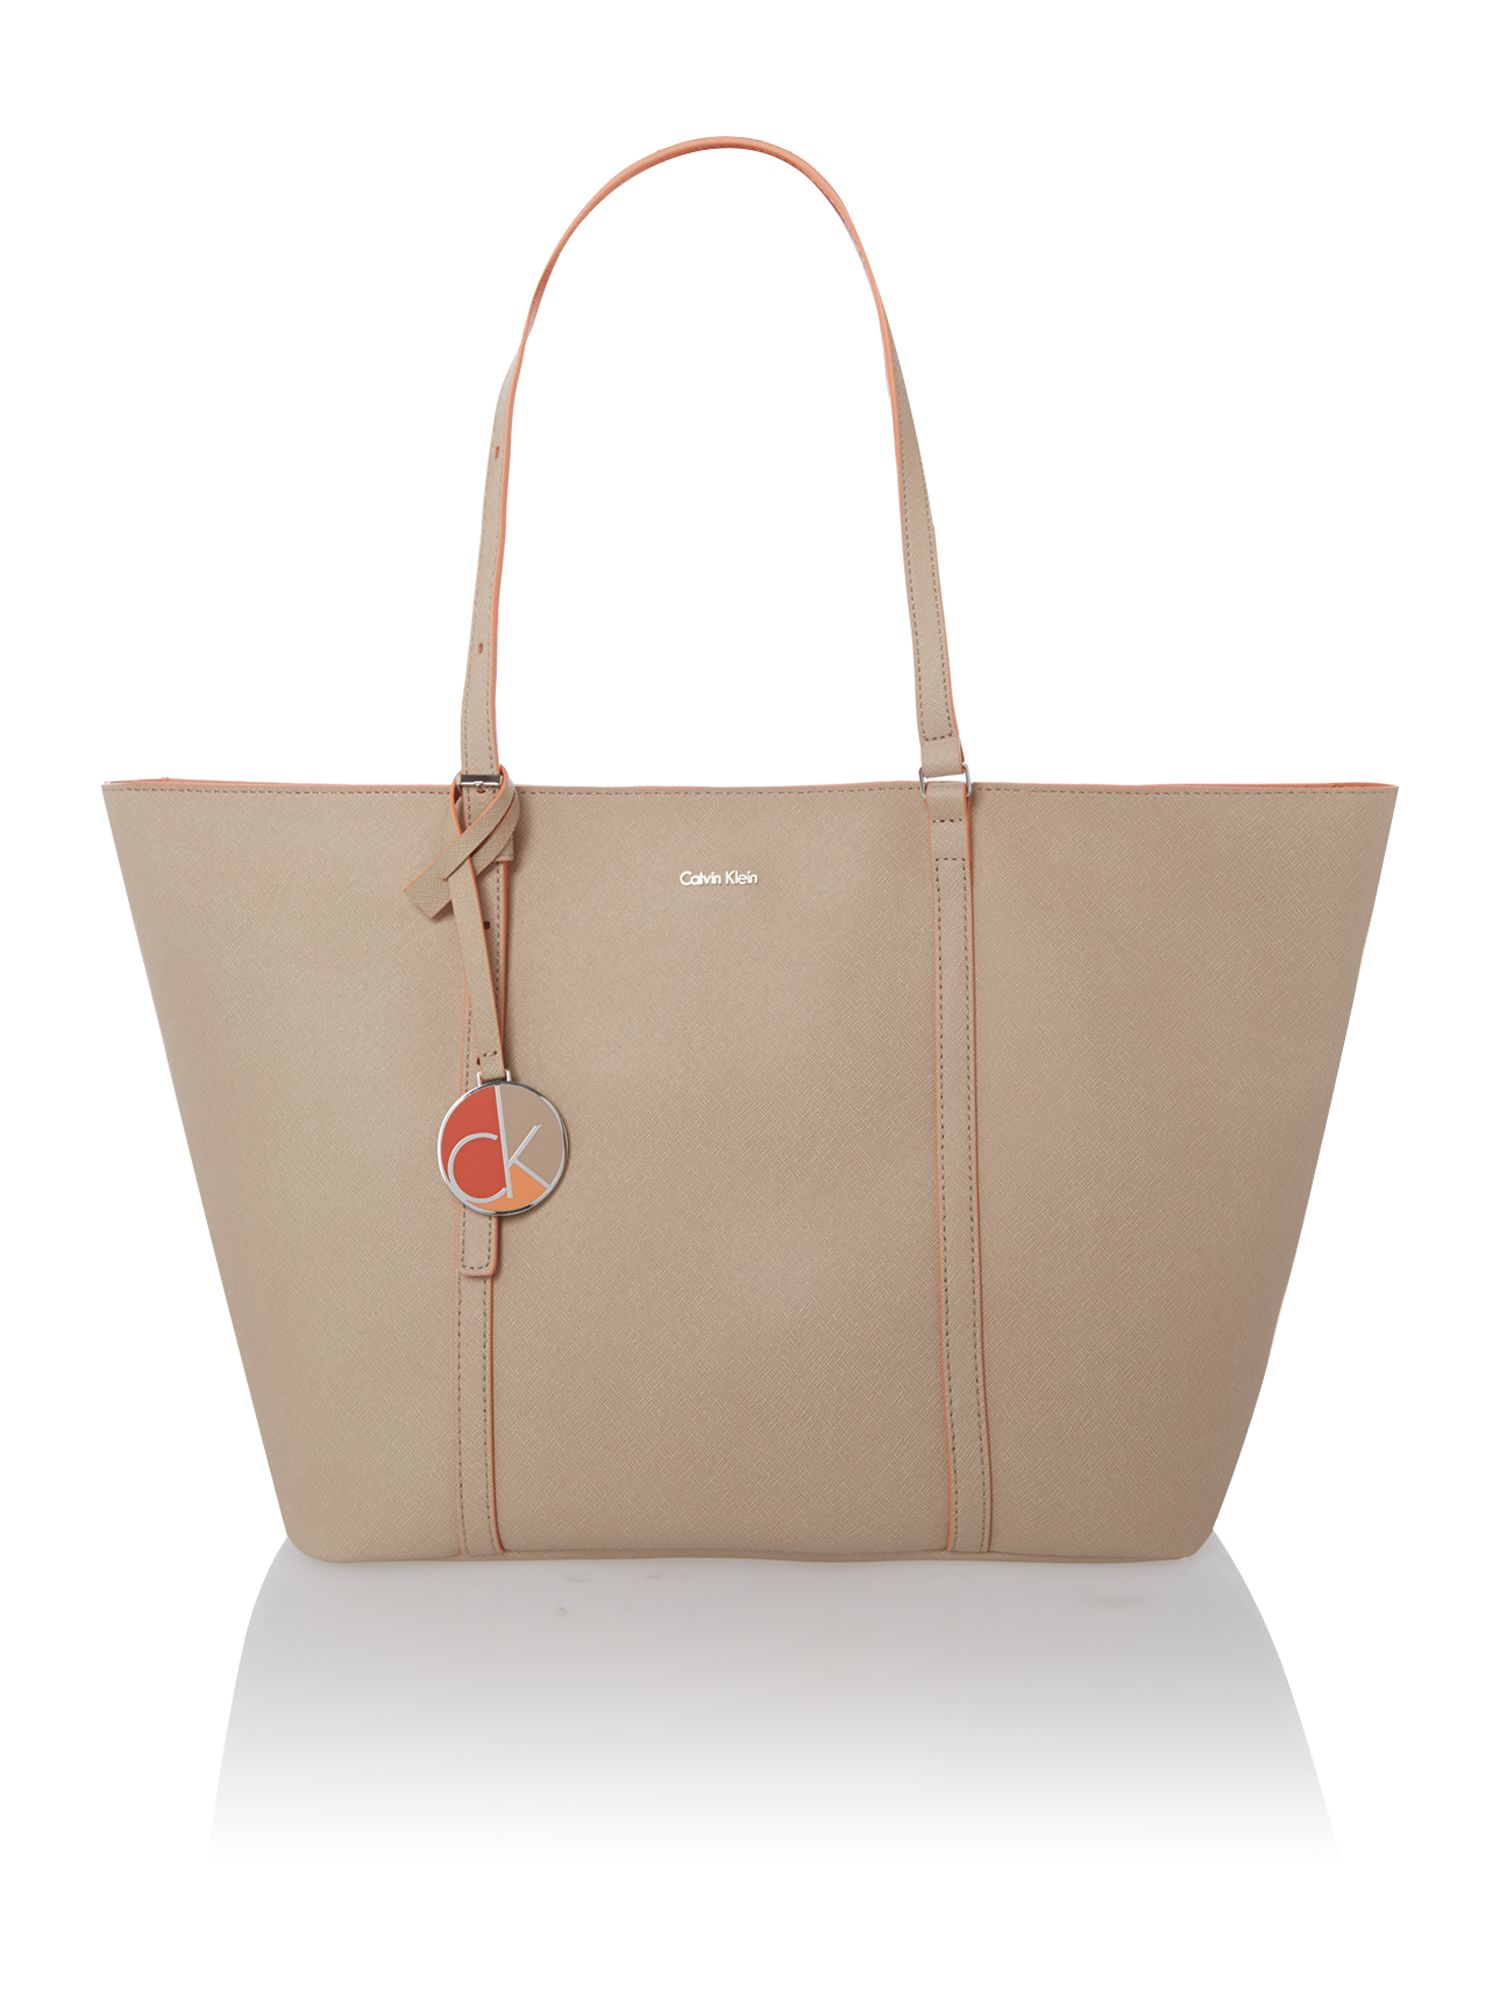 Sofie small neutral tote bag